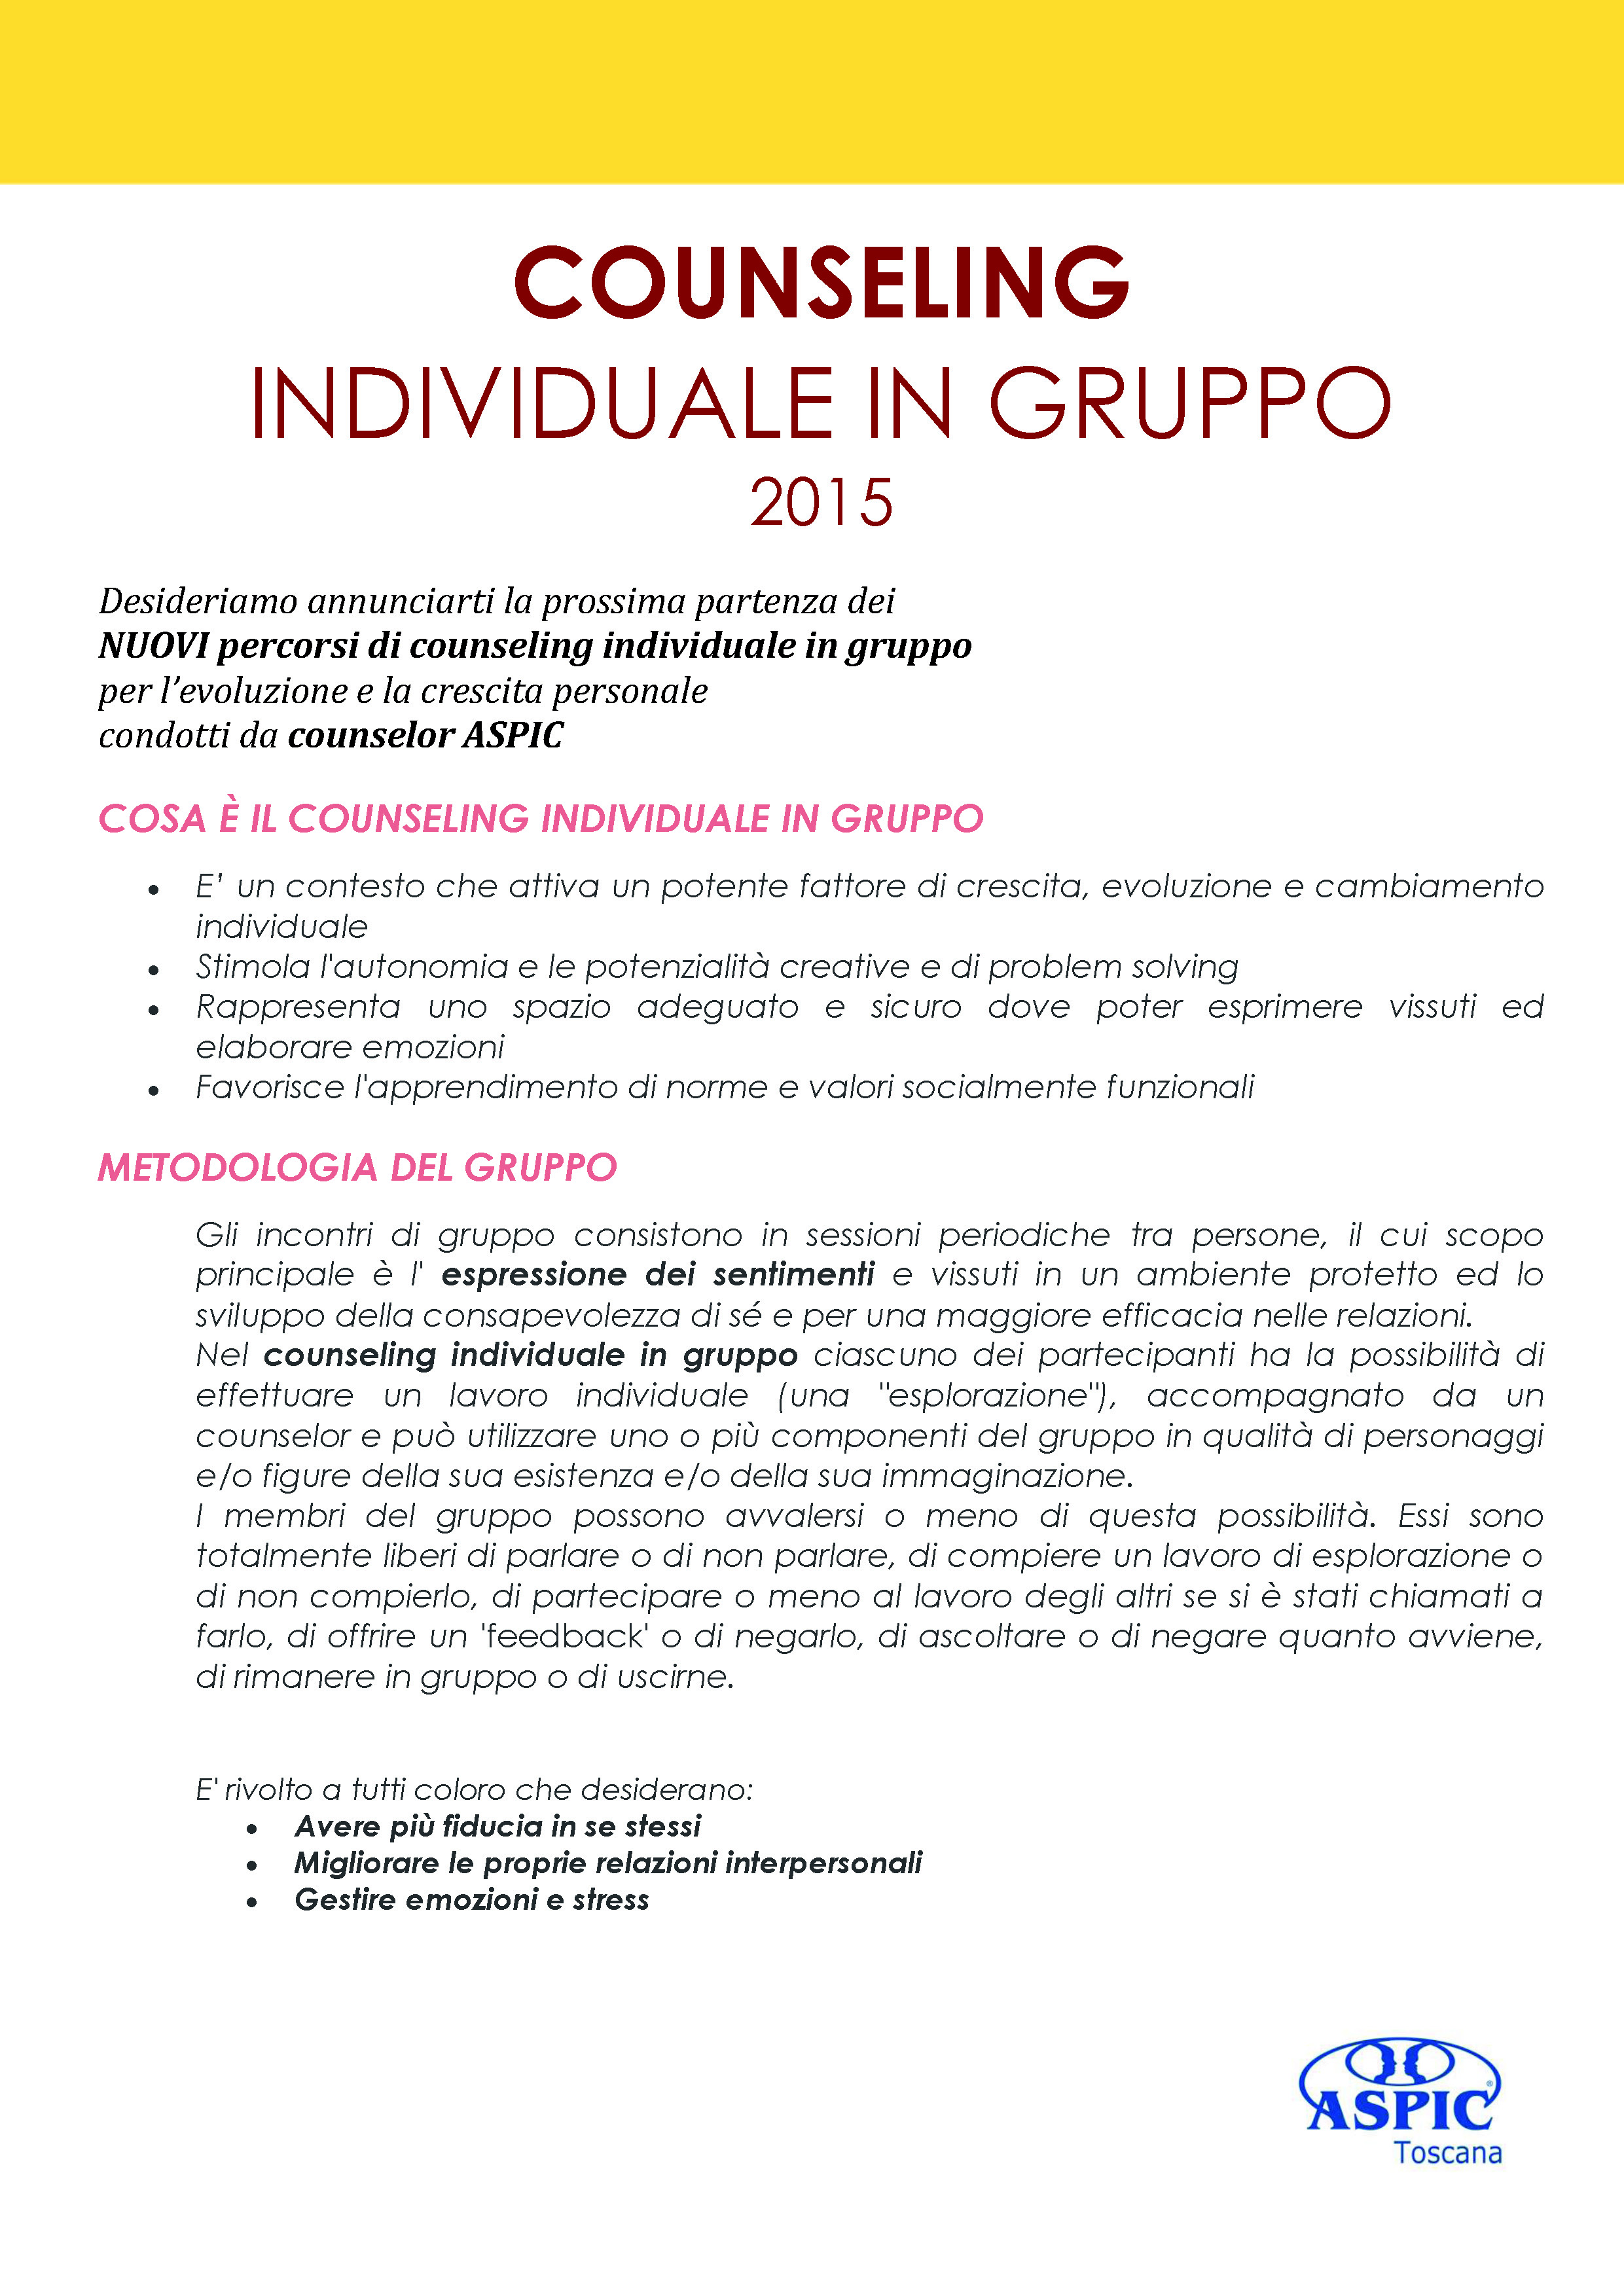 Counseling individuale in gruppo 2015_Pagina_1_Pagina_1